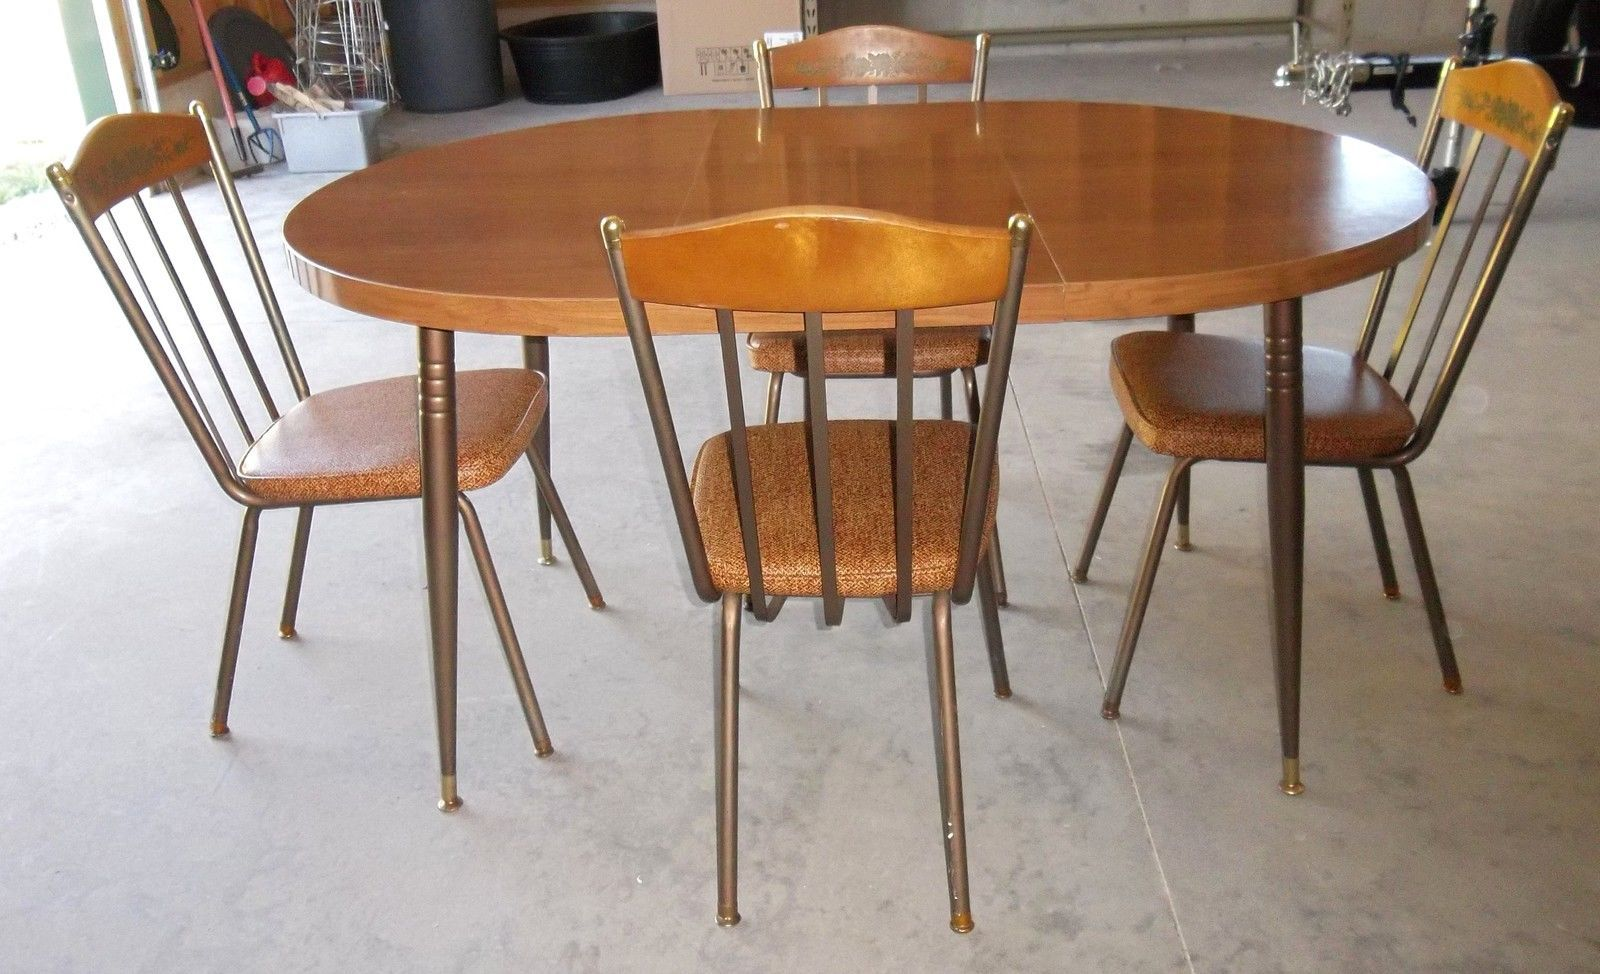 vintage lloyd mfg of heywood wakefield retro chrome dinette set table 4 chairs ebay kitchen. Black Bedroom Furniture Sets. Home Design Ideas